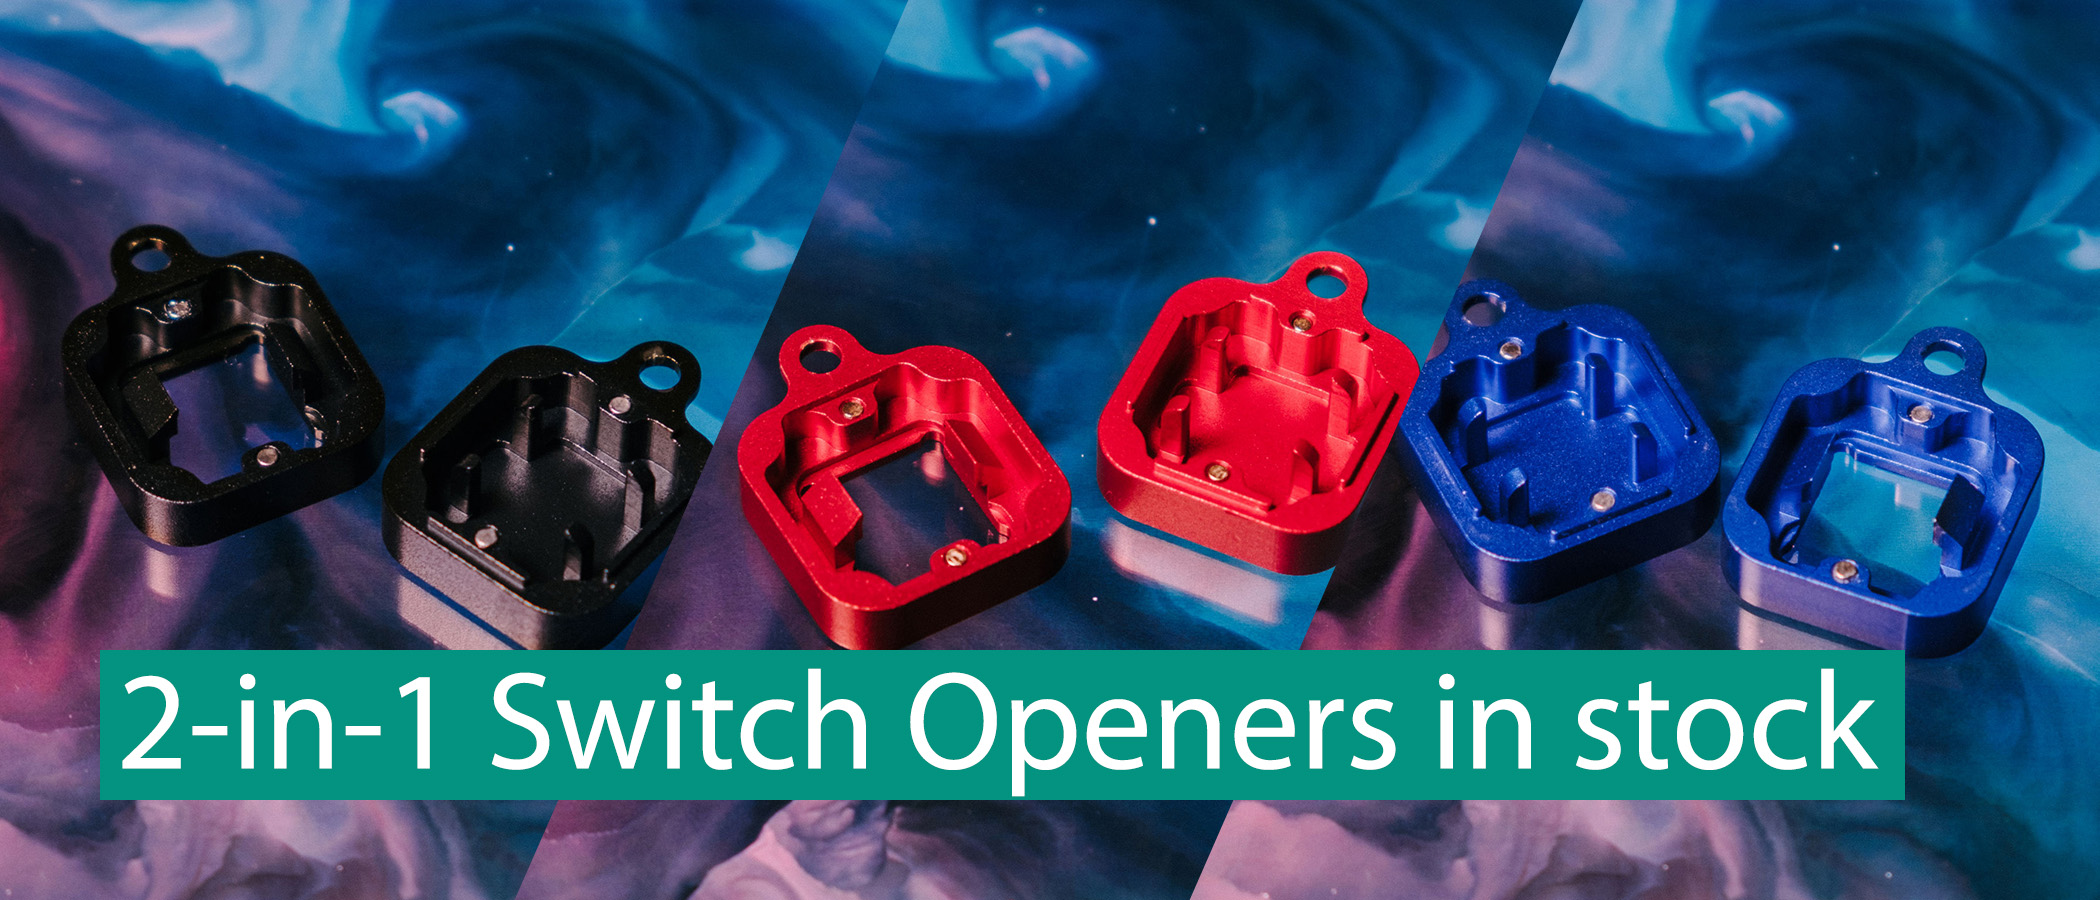 2-in-1 Metal Switch Openers Now Available In Black, Red, Blue